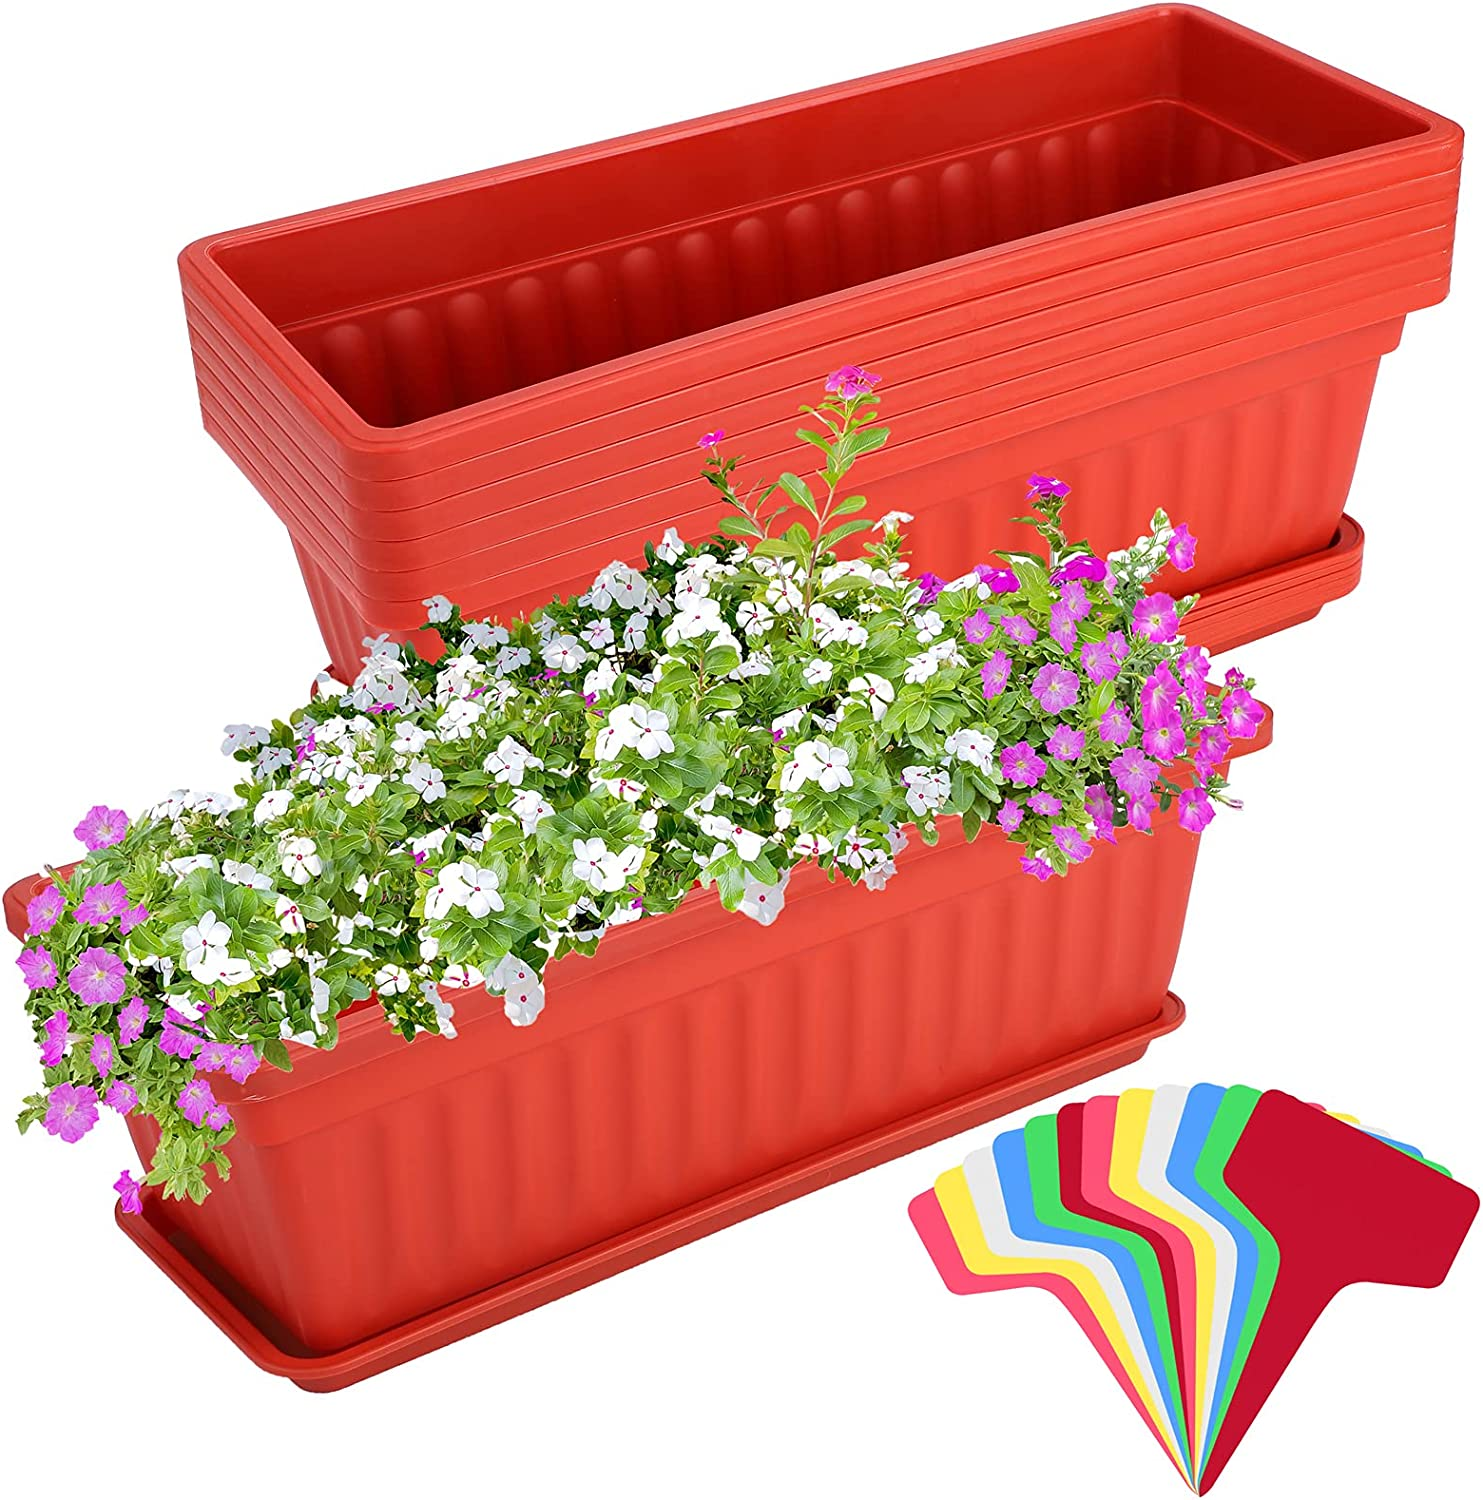 Elcoho 6 Pack Flower Window Box Planters 17 Inches Plastic Vegetable Plant Pot Rectangular Planters with Trays for Windowsill, Patio, Porch, Garden, Home Decor (Red)